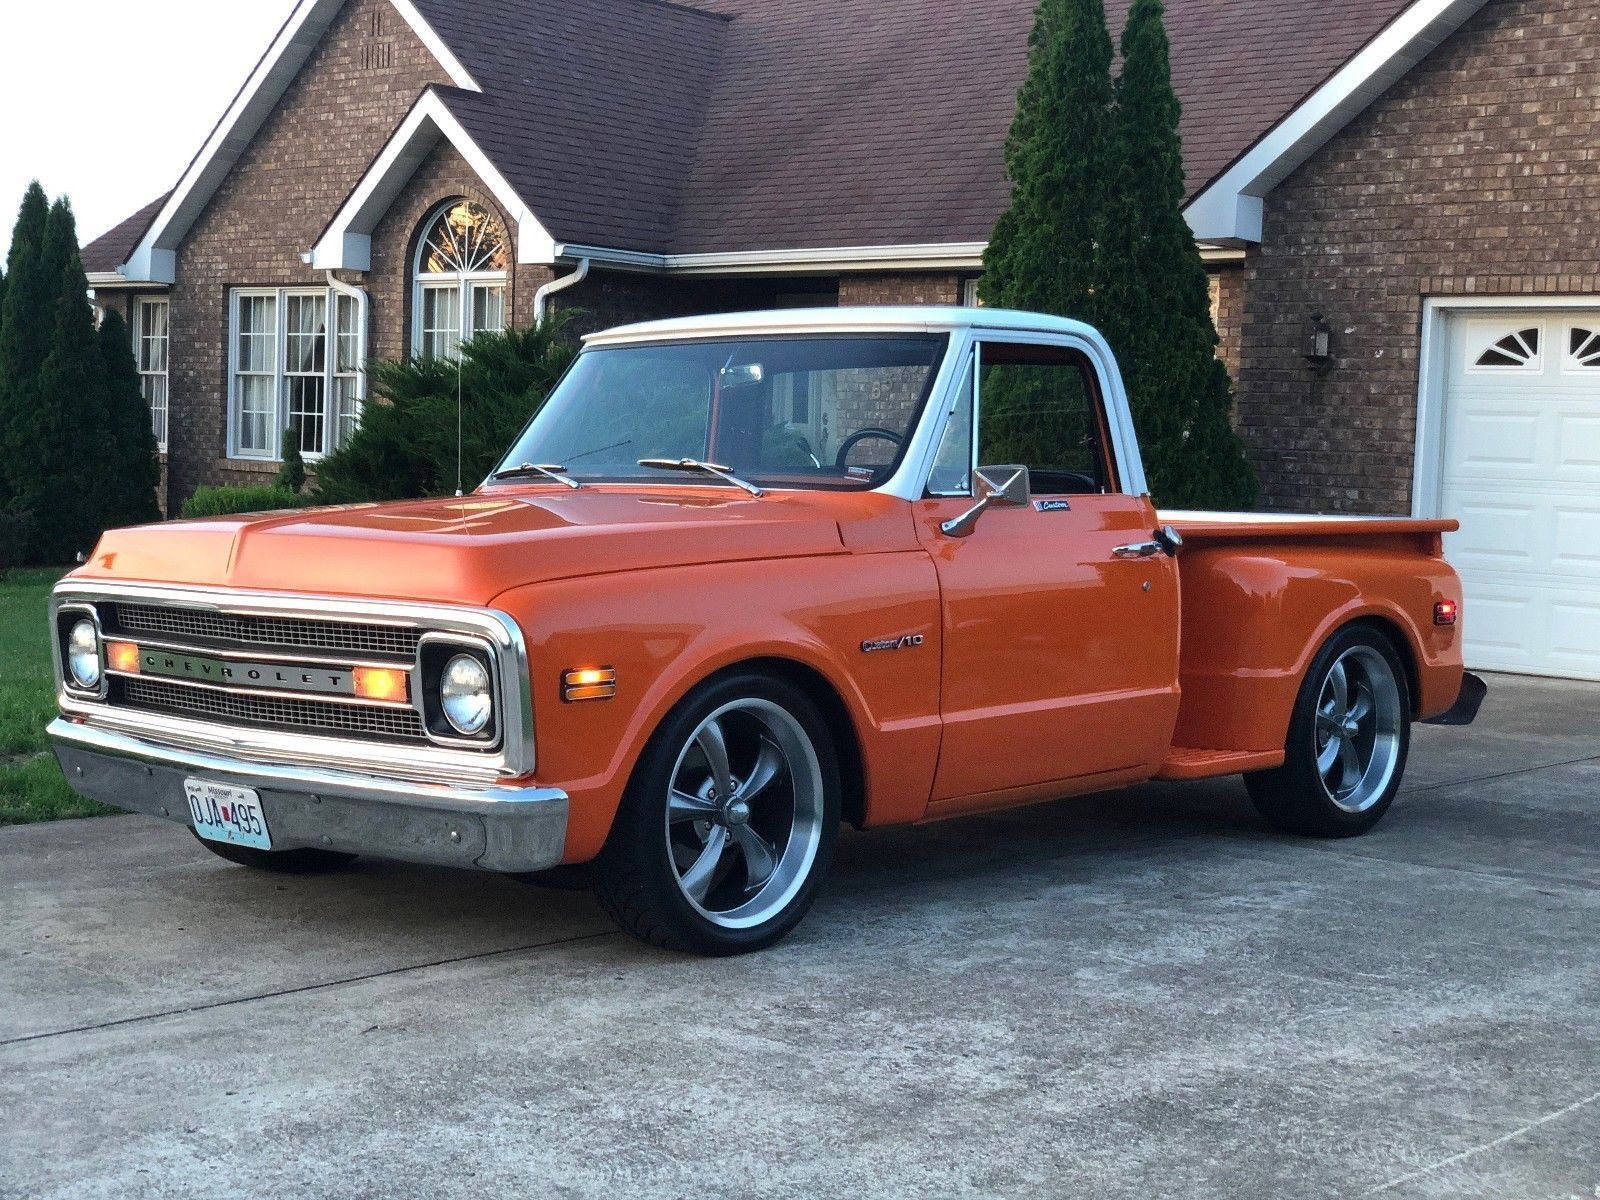 eBay 1969 Chevrolet C10 1969 Chevy C10 Short bed, Step